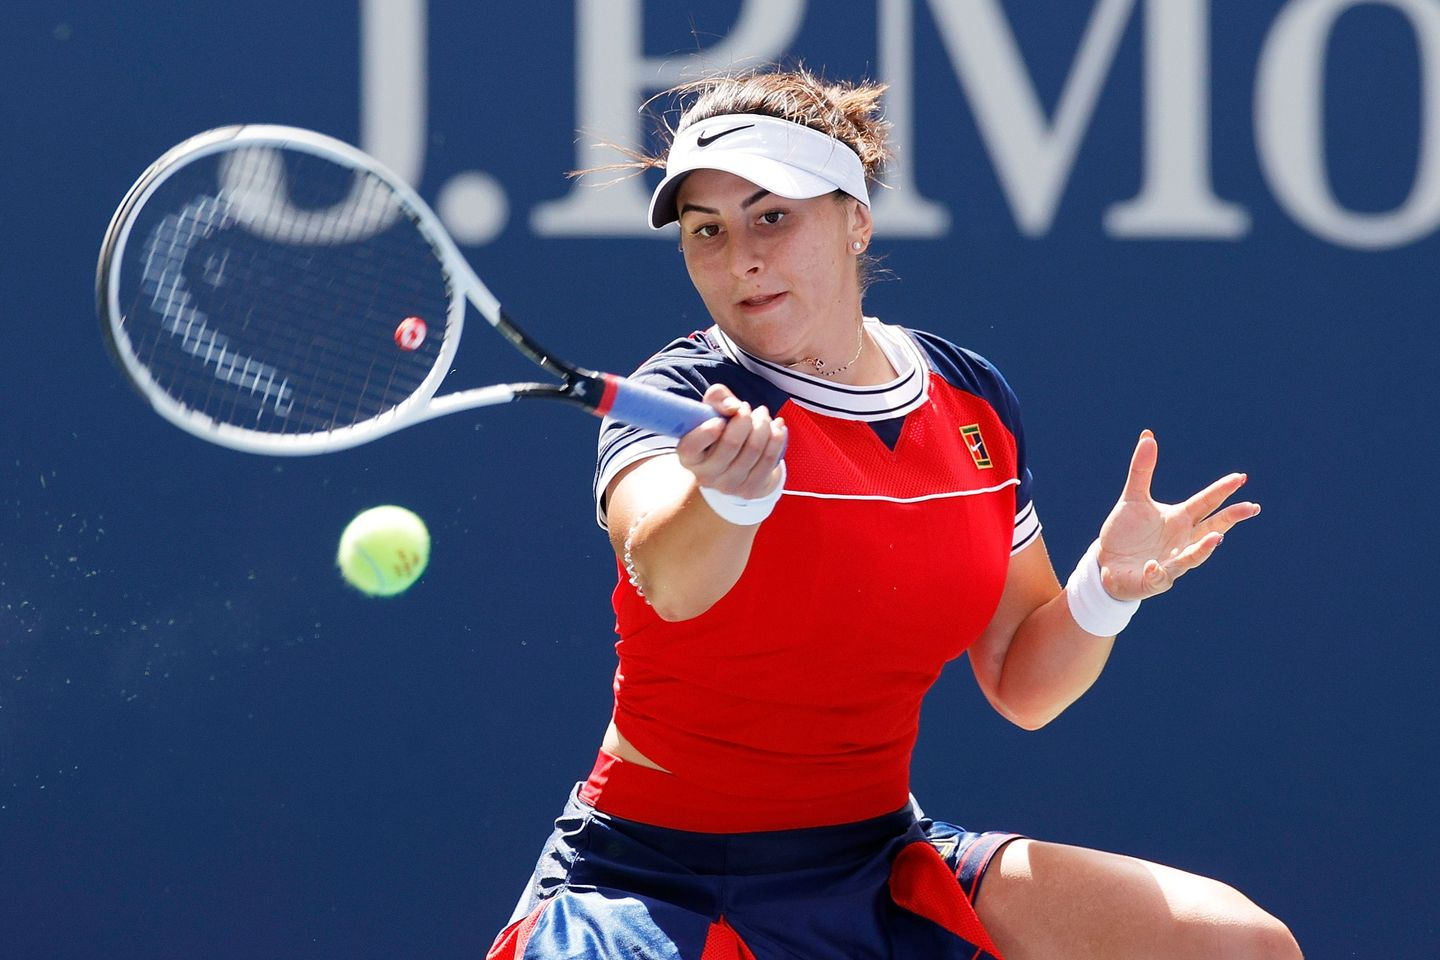 US Open: Highlights of Day 8